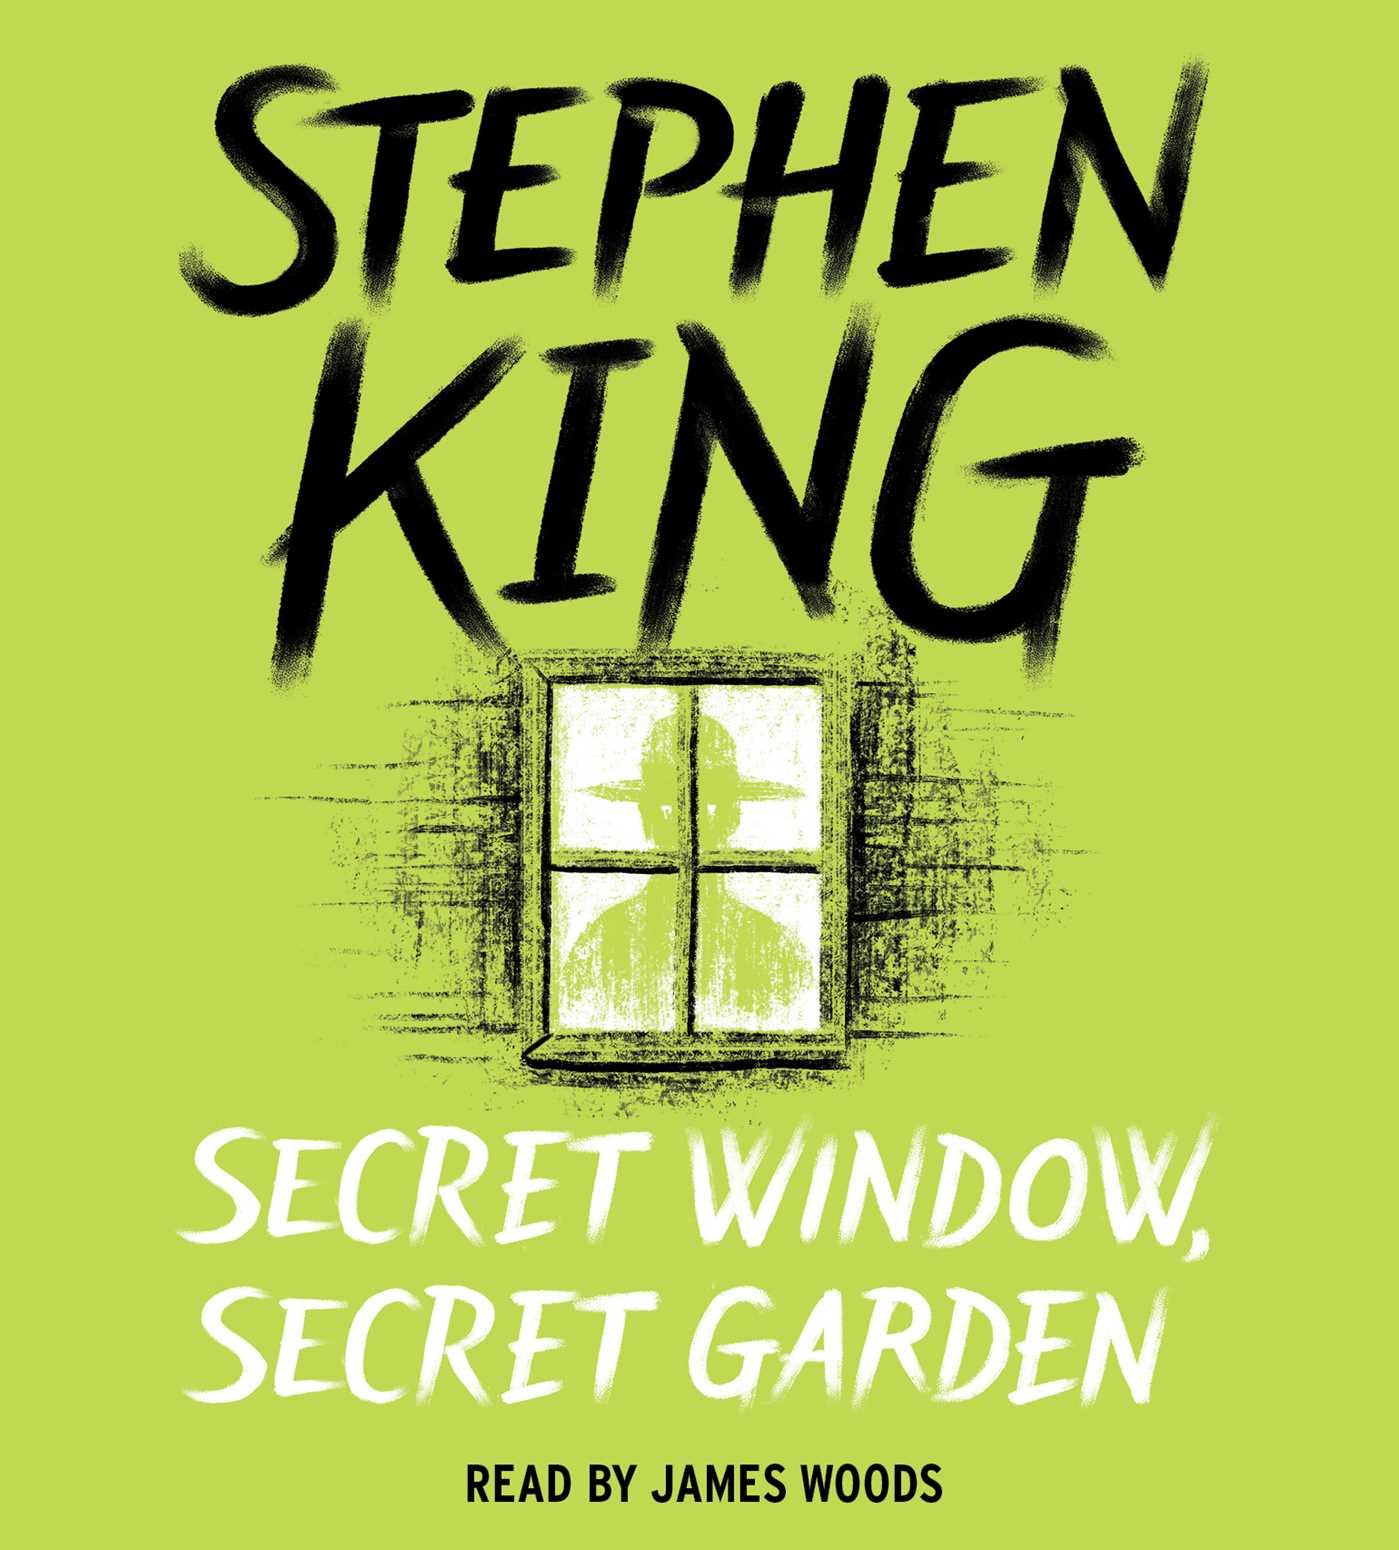 Secret Window Secret Garden Amazon De Stephen King James Woods